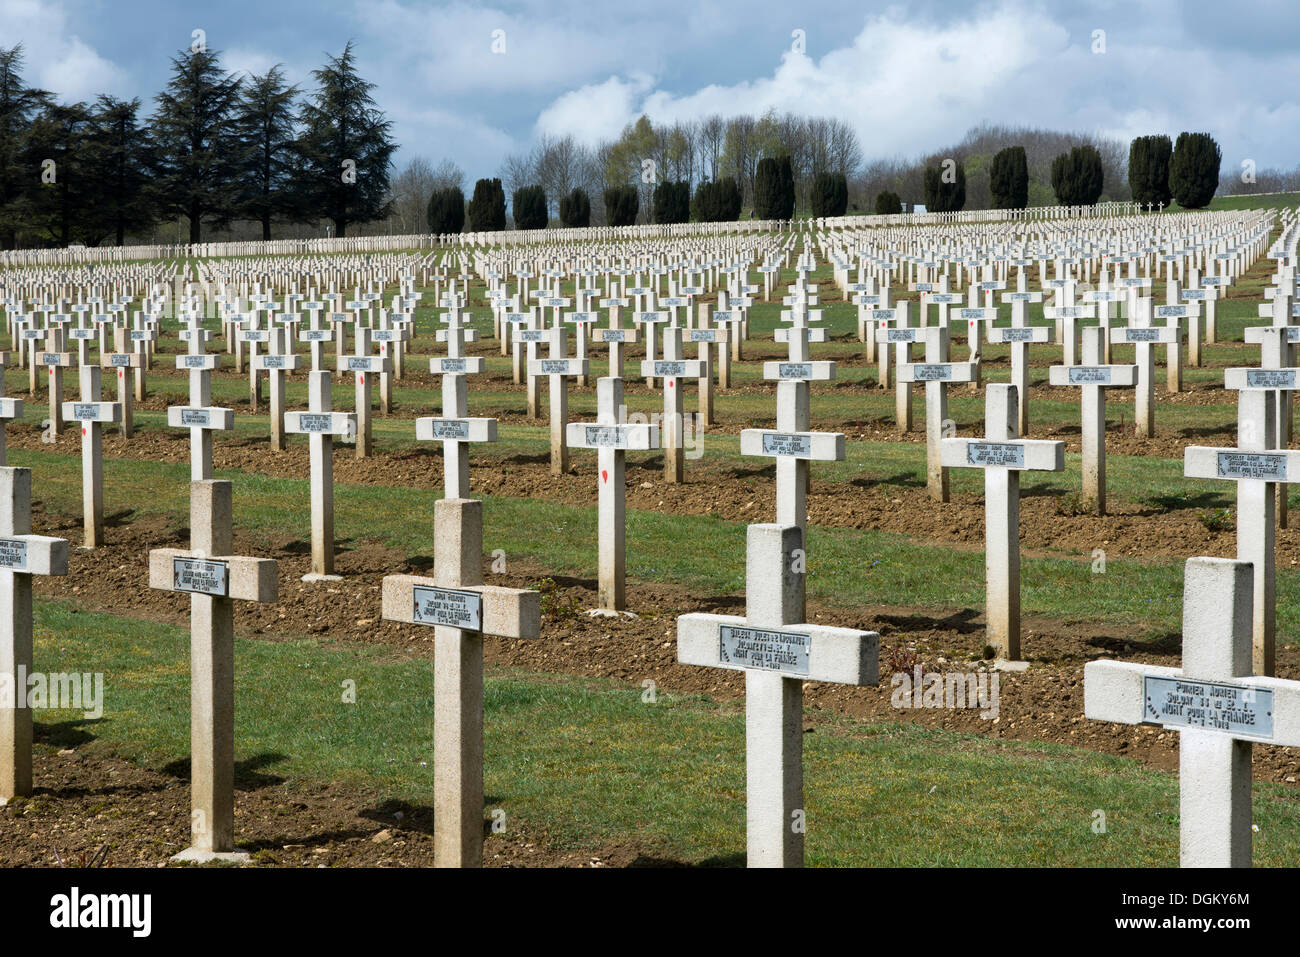 Graves, crosses, headstones with name plates on a military cemetery, Battle of Verdun, First World War, Verdun, Lorraine, France - Stock Image